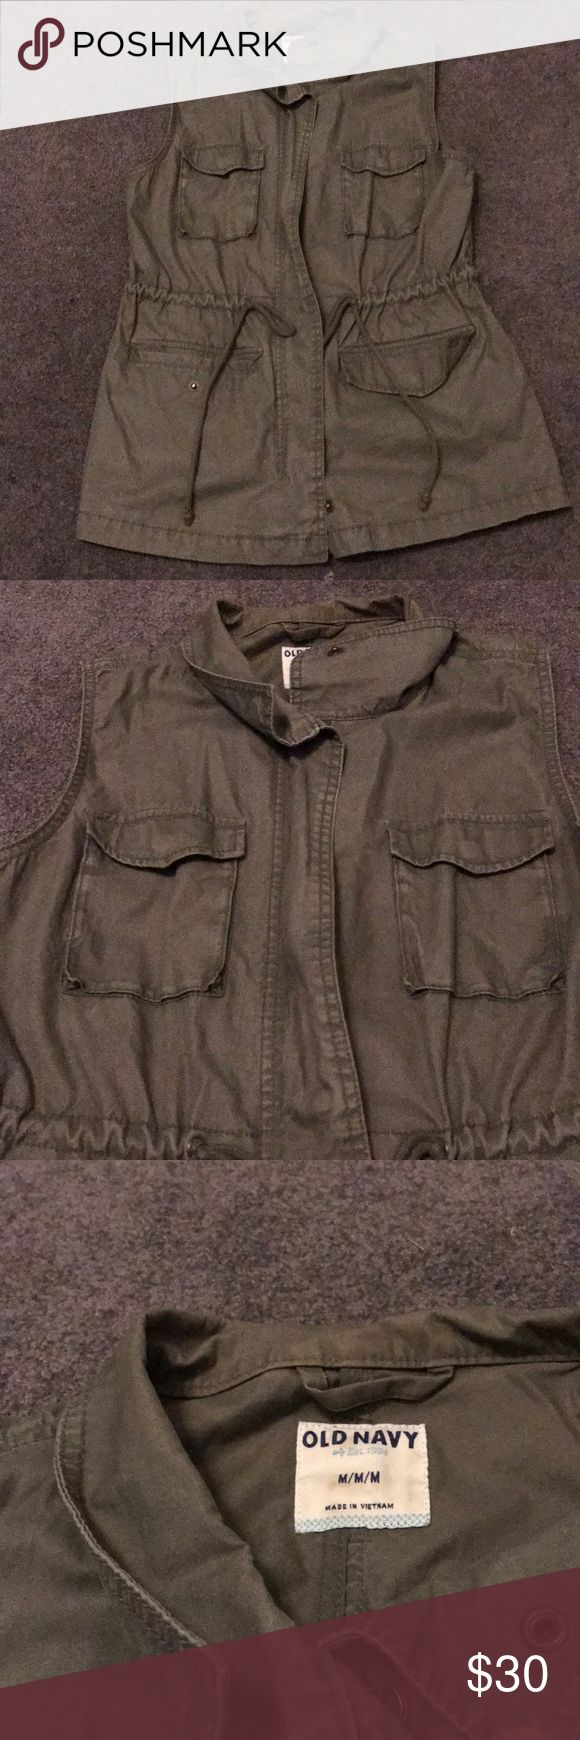 OLD NAVY VEST Old Navy twill-cargo vest in olive green. Longer in length. 4 pockets. 2 ties at the waist if you are looking to tighten for shape. Perfect for fall weather. Great condition, no rips/ tears/ stains. Size medium. Old Navy Jackets & Coats Vests